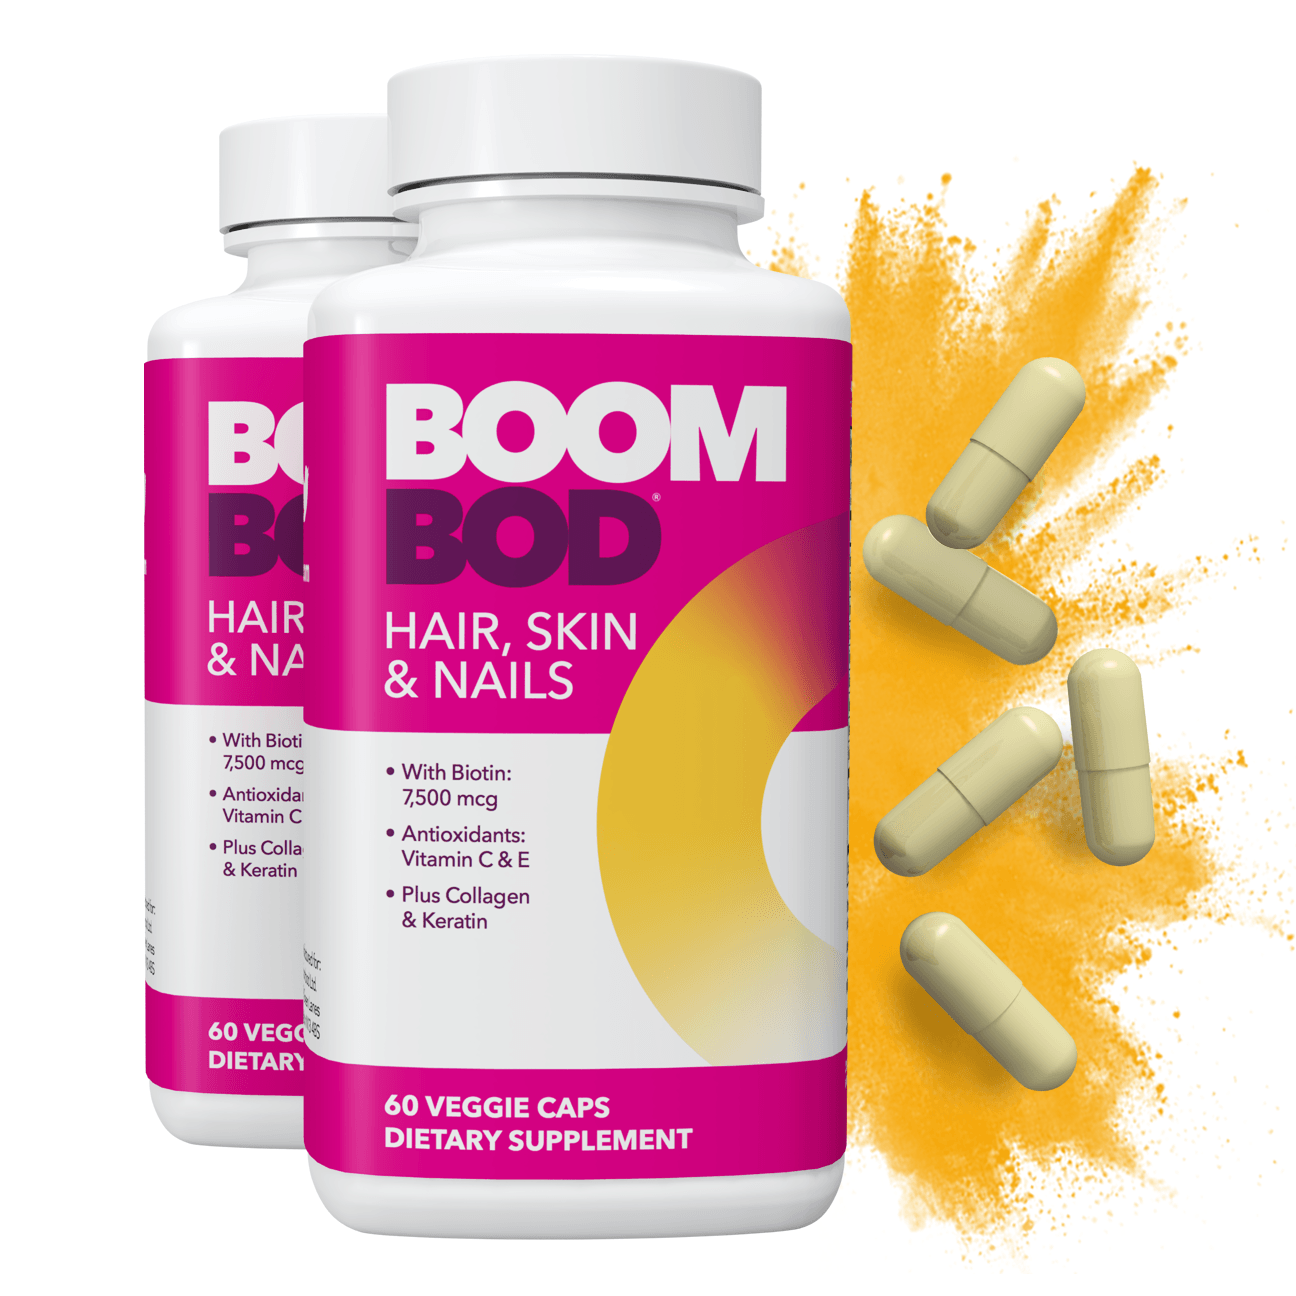 Boombod | Hair, Skin, & Nails Supplement | 60 Day | 120 Count